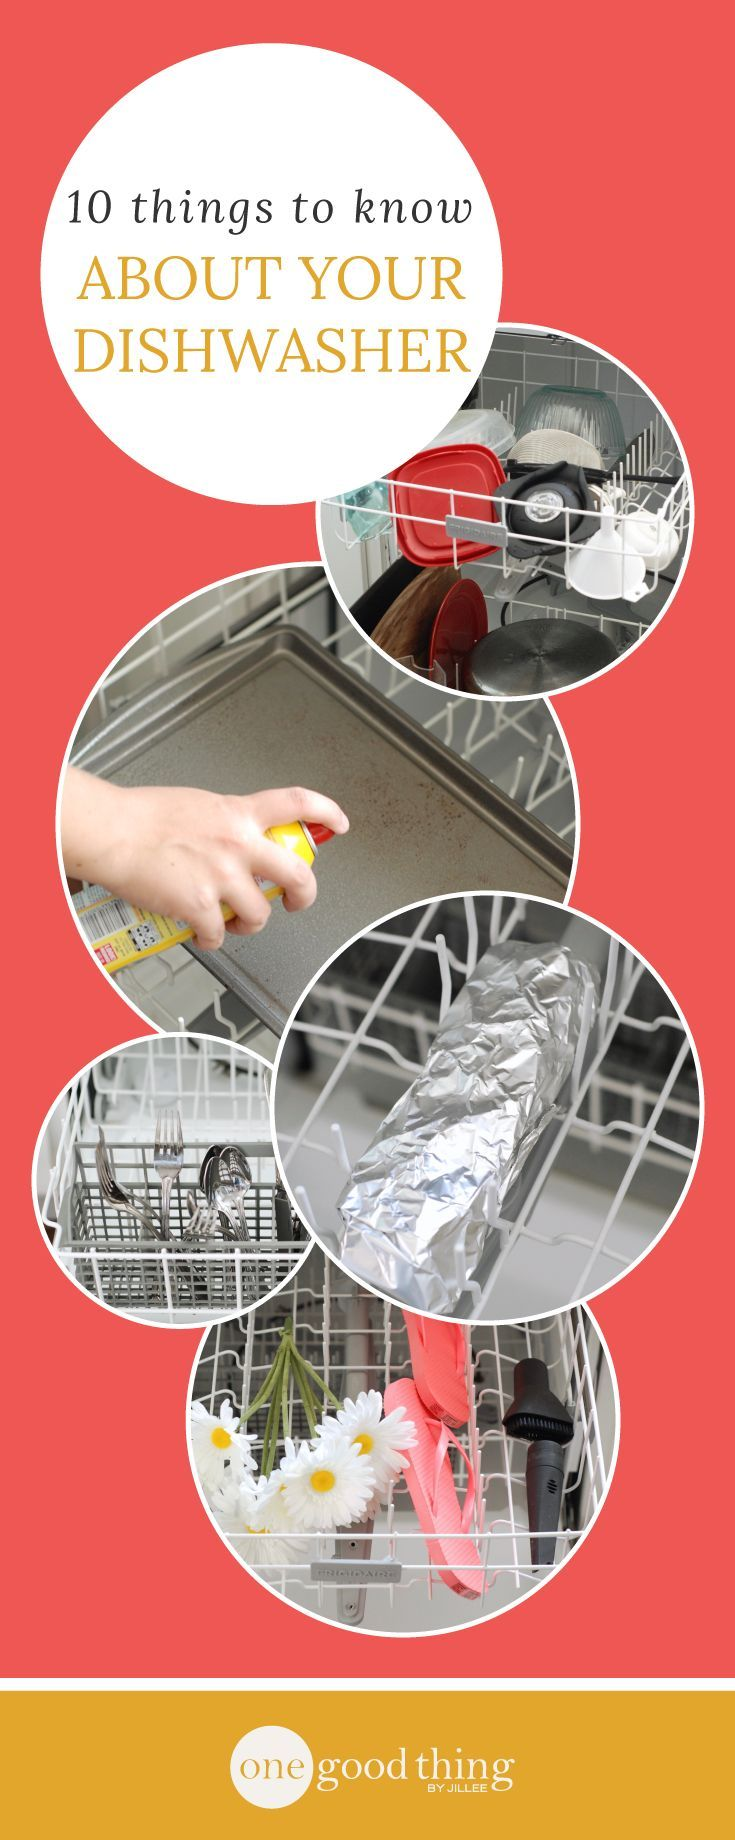 420 Best Frugal Diy Cleaning Images On Pinterest